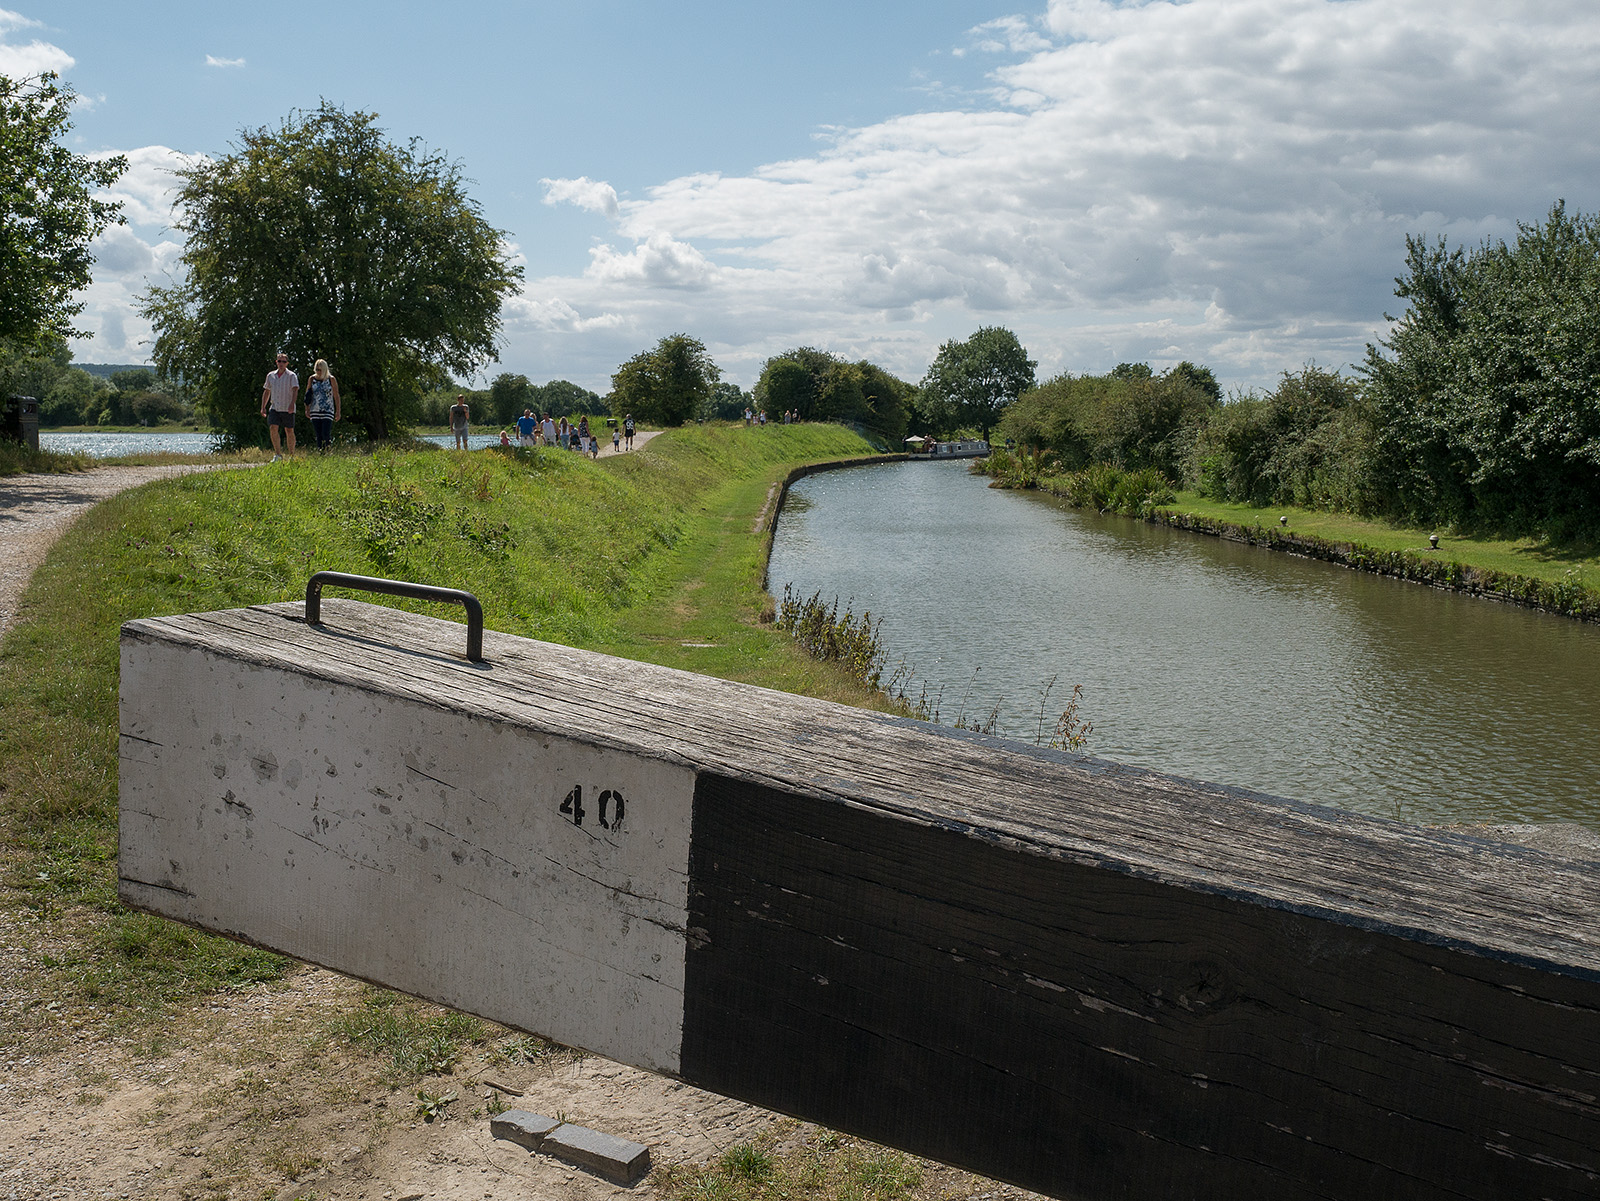 Marsworth lower lock and the nearby Marsworth Reservoir